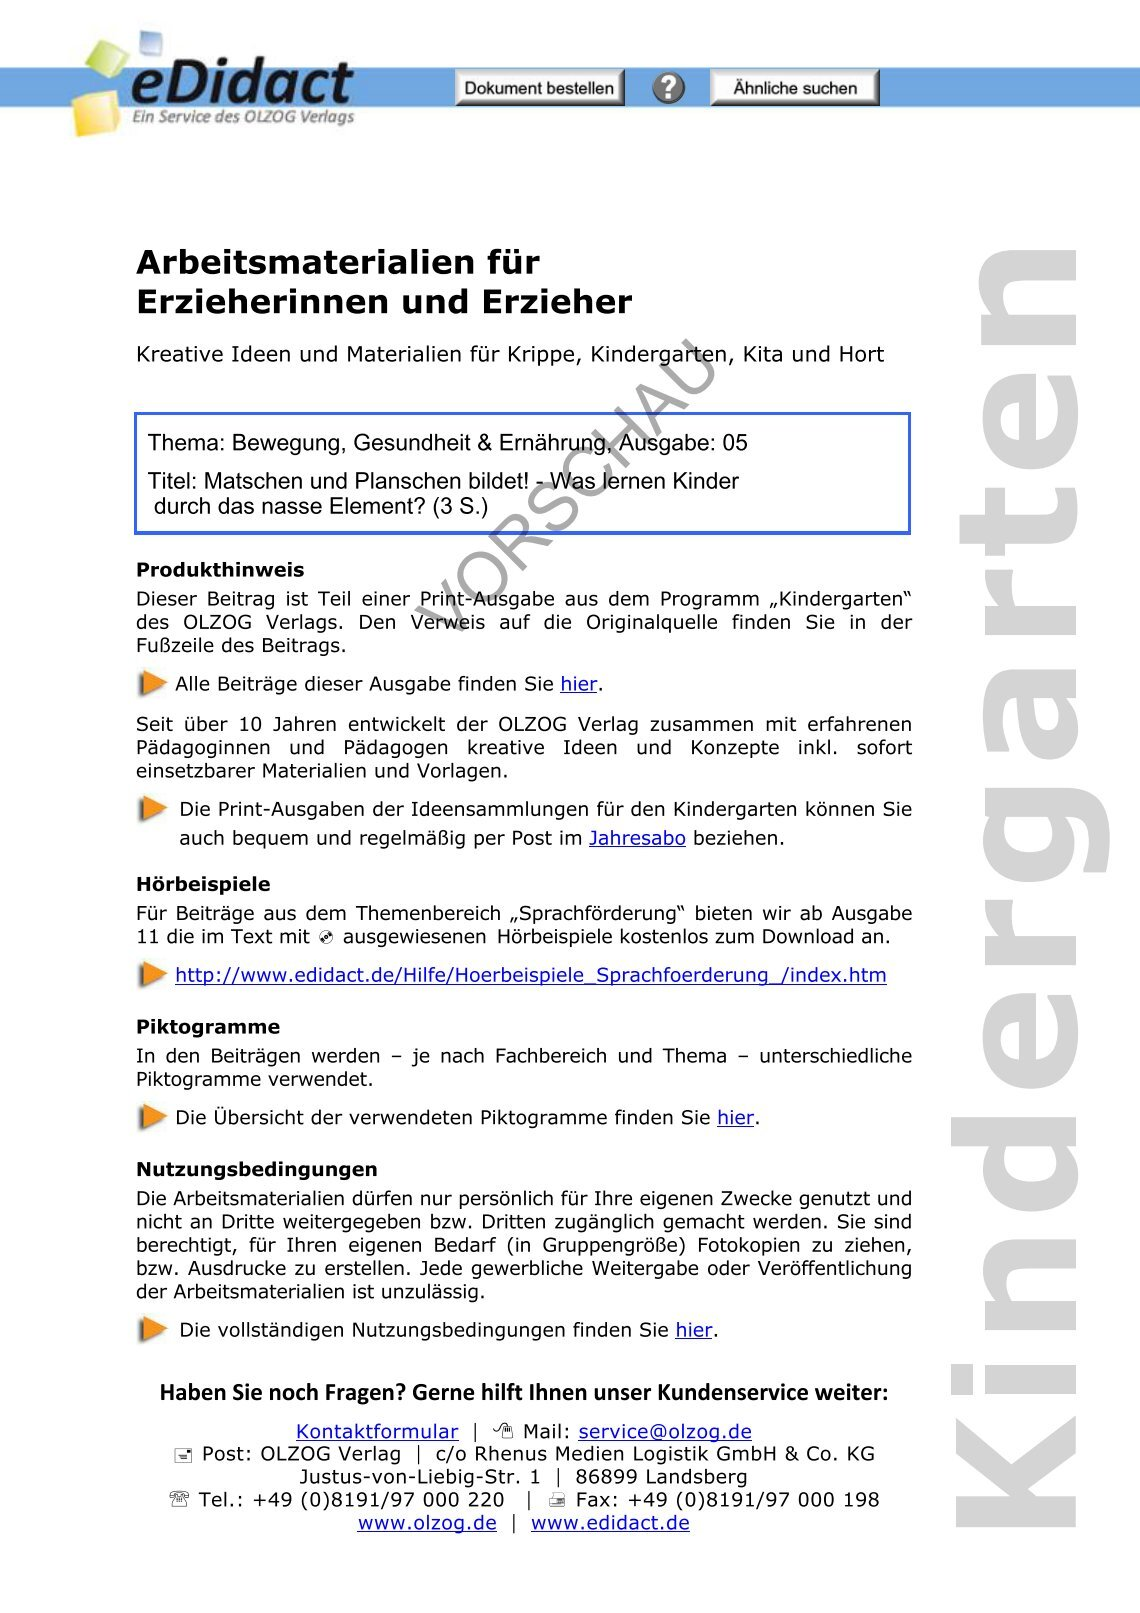 60 free Magazines from COACHING.BRIEFE.DE